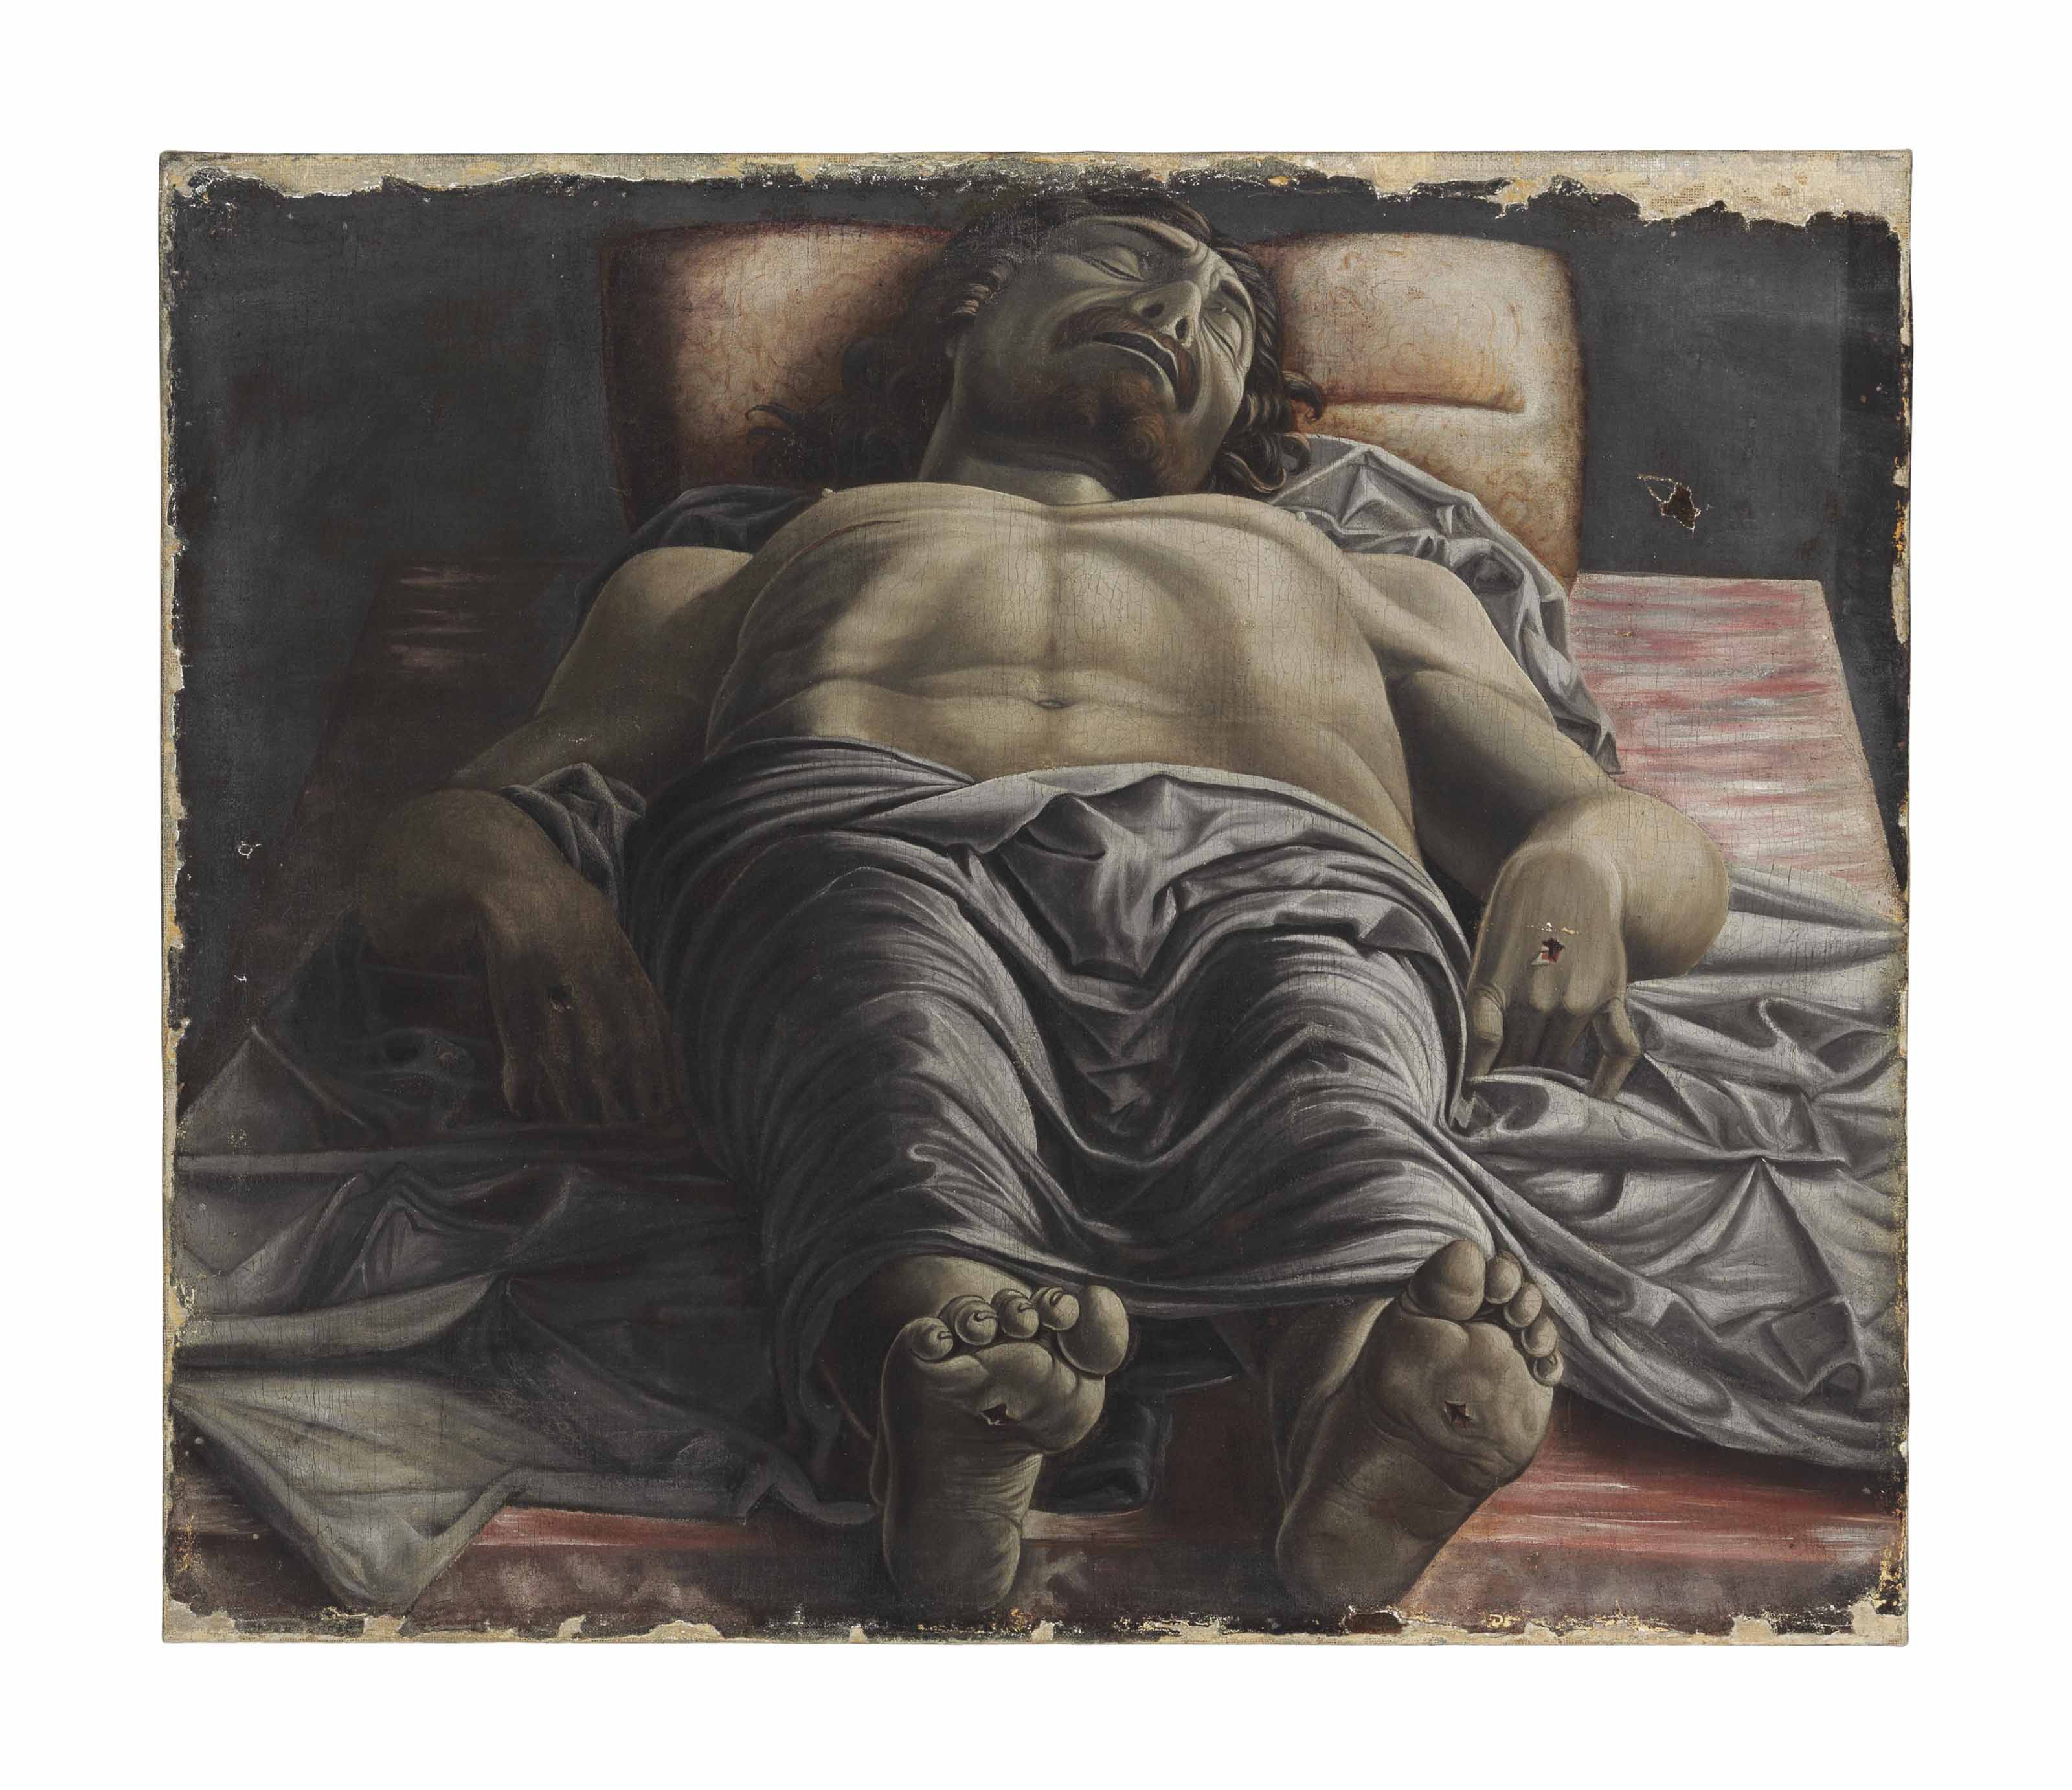 foreshortened christ by andrea mantegna